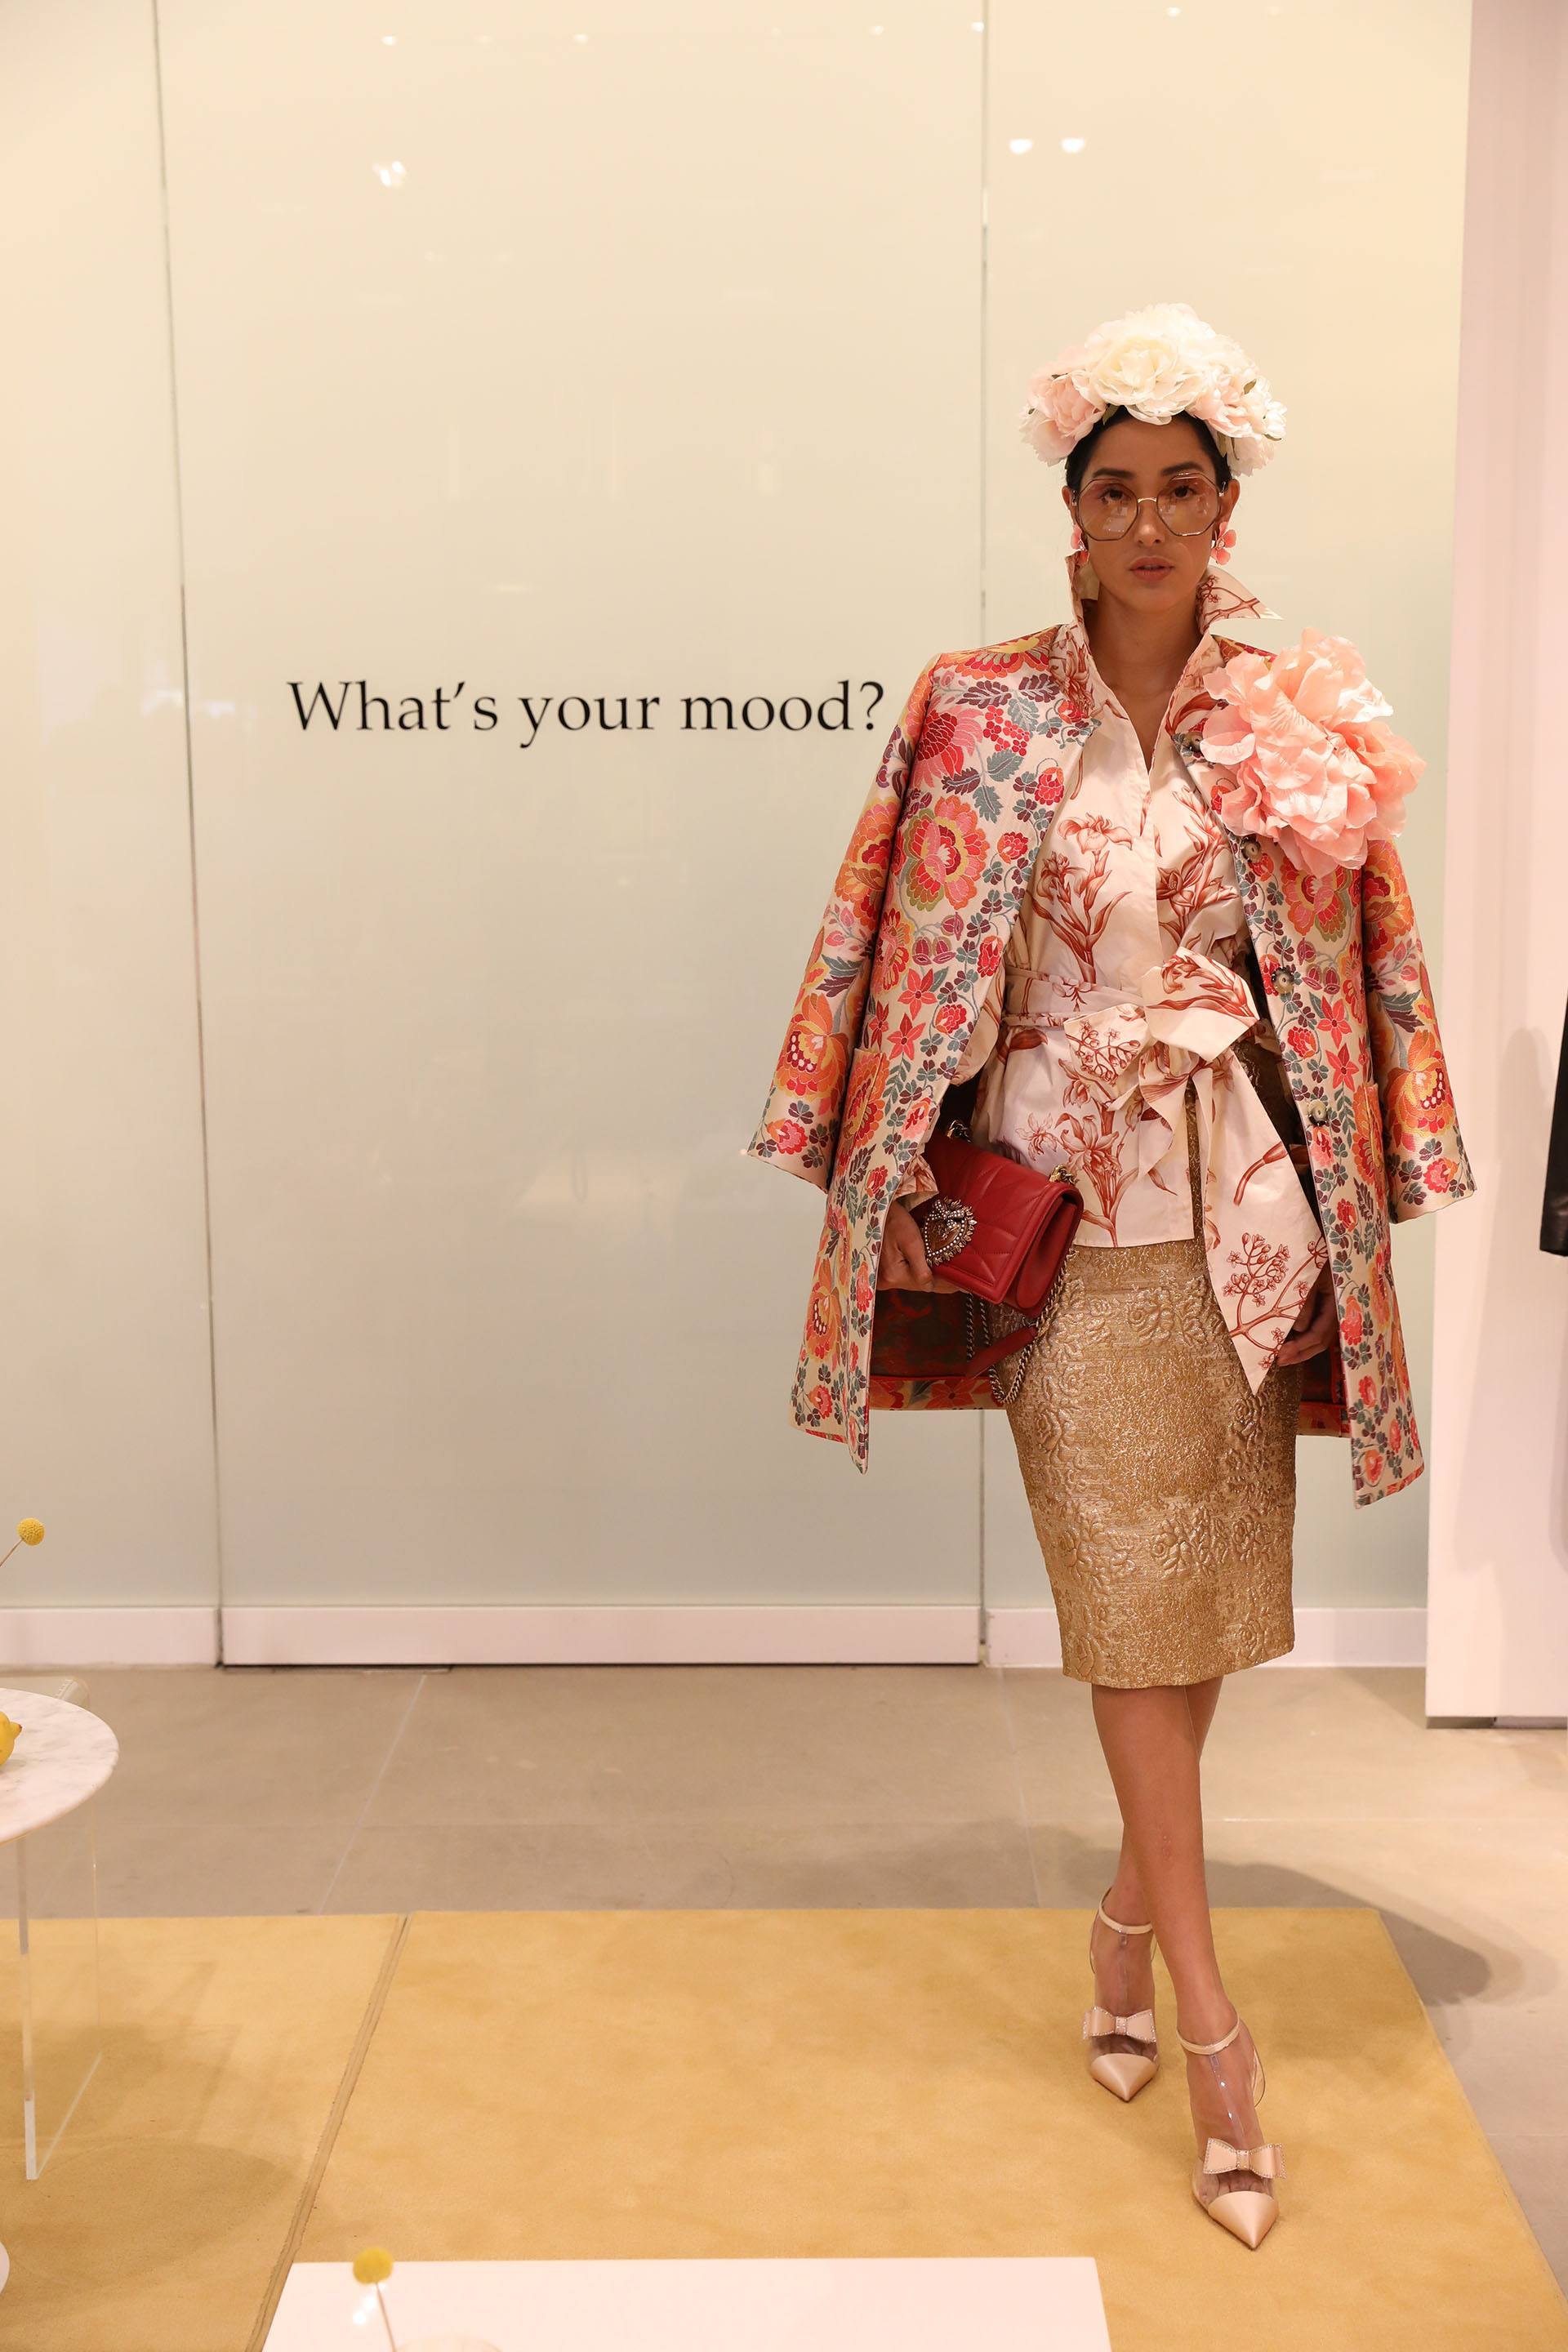 Model in Spring 2019 collection from Neiman Marcus Bal Harbour